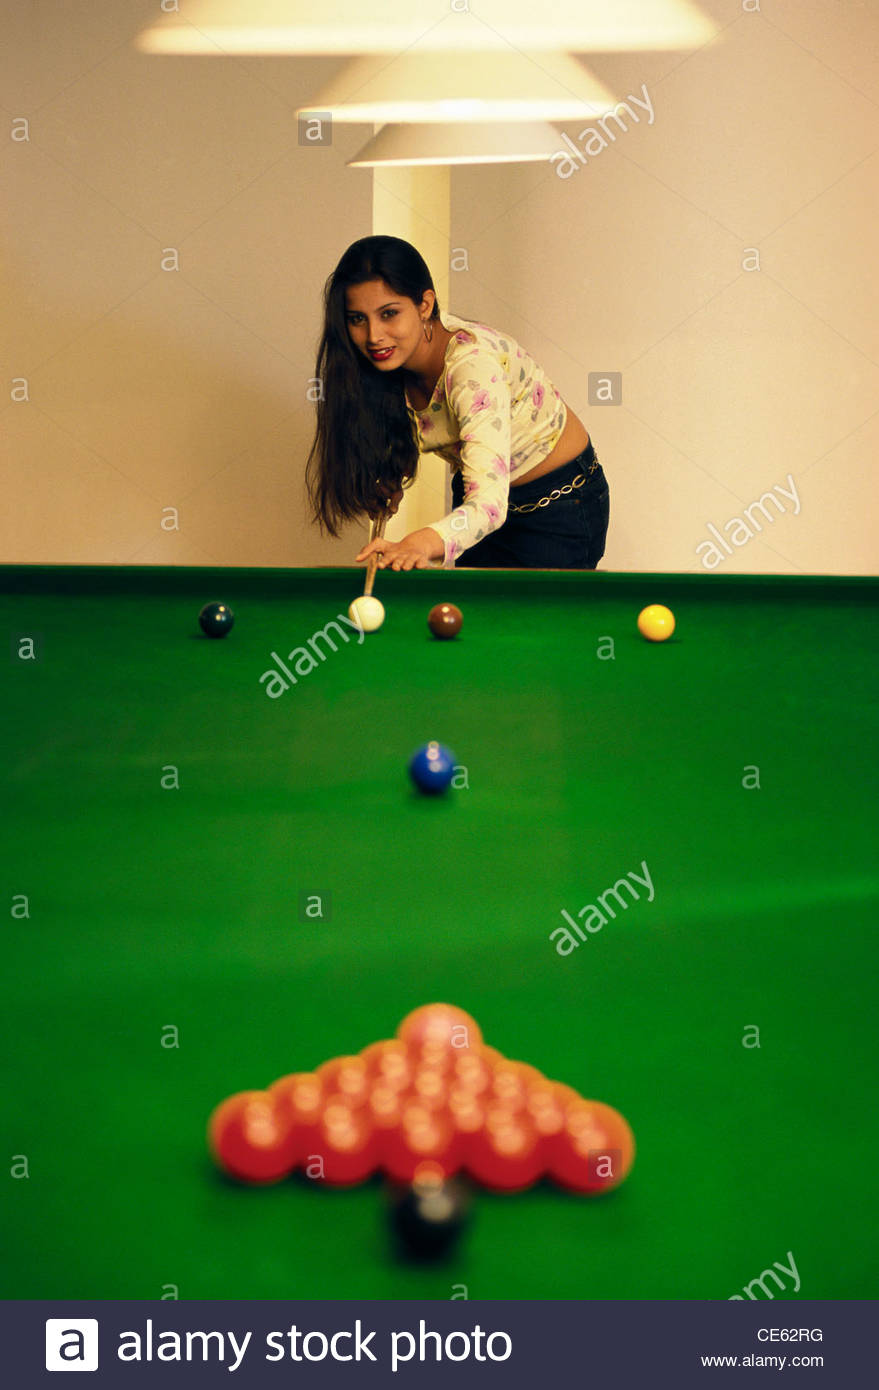 Setting Up A Pool Table Rack Of Pool Balls Set Up On Table And Man Playing With Cue Ball